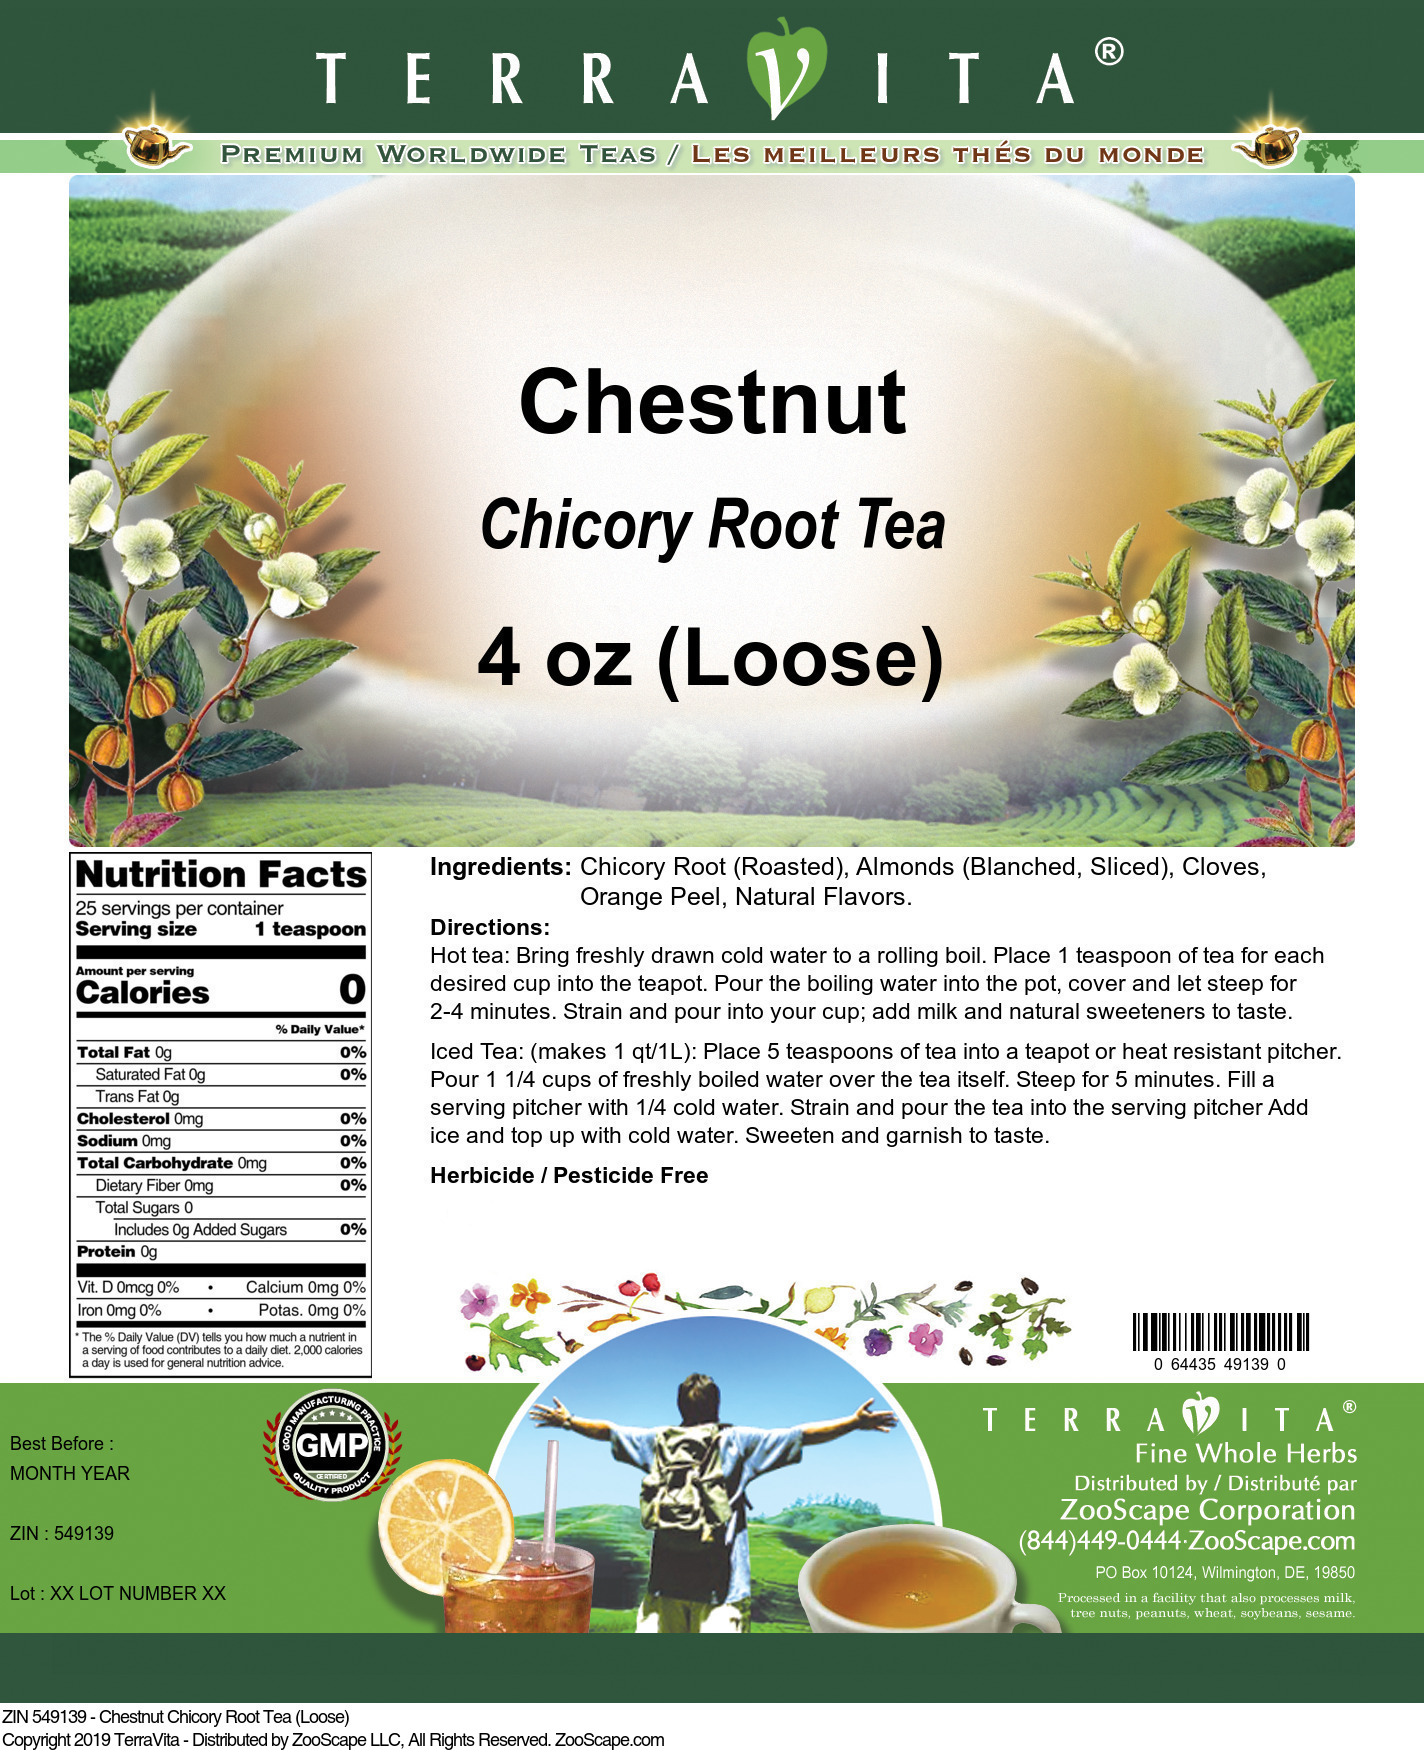 Chestnut Chicory Root Tea (Loose)